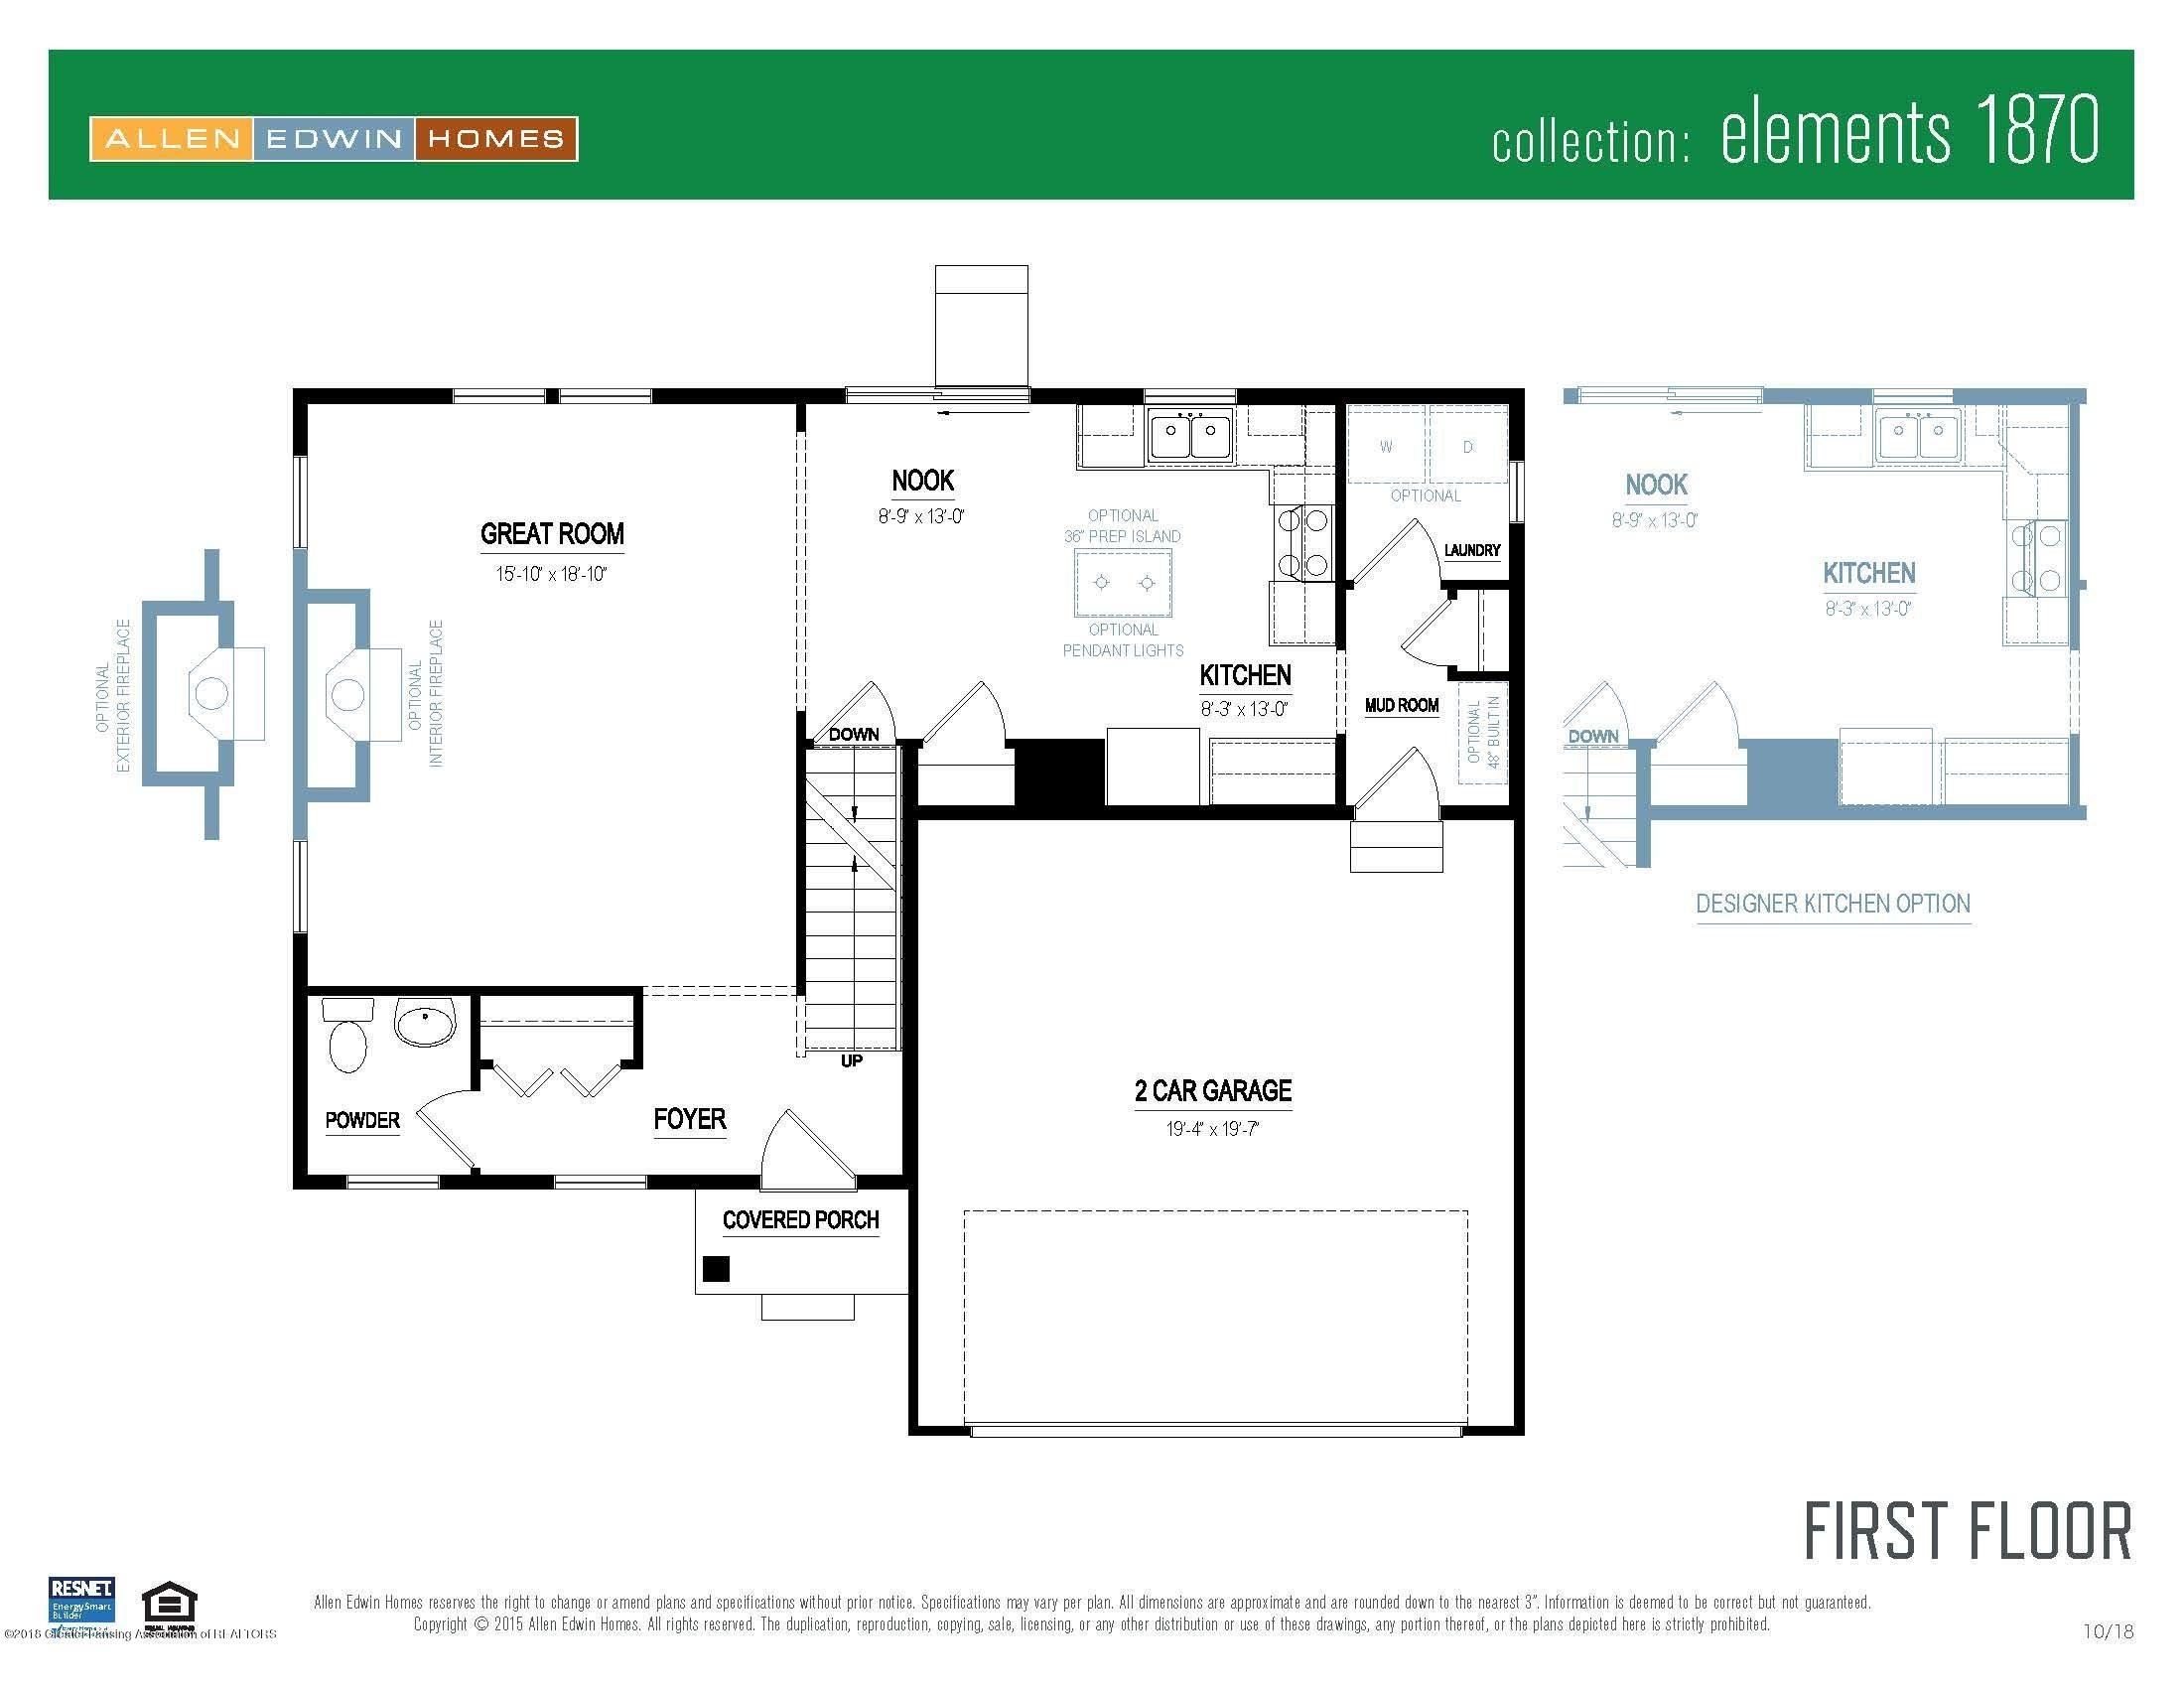 206 Ayla Drive - Elements 1870 V8.0a First Floor - 18